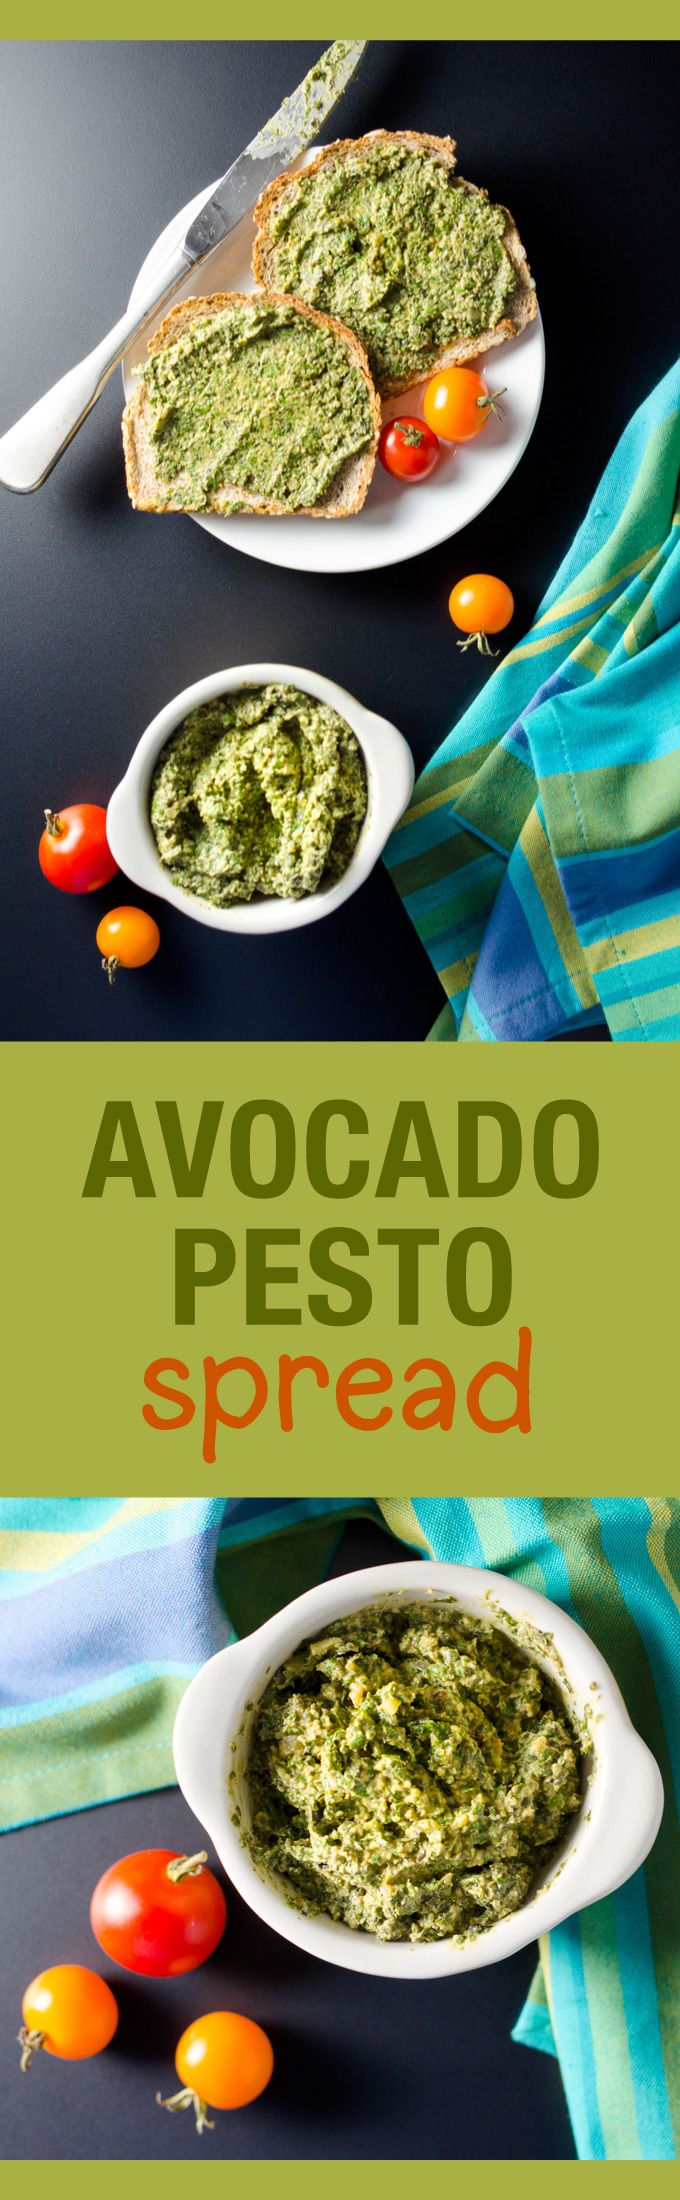 Avocado Pesto Spread - vegan | VeggiePrimer.com  All the cheesy, garlic, basil flavor you associate with pesto without the dairy or processed oil. #vegan #wholefoods